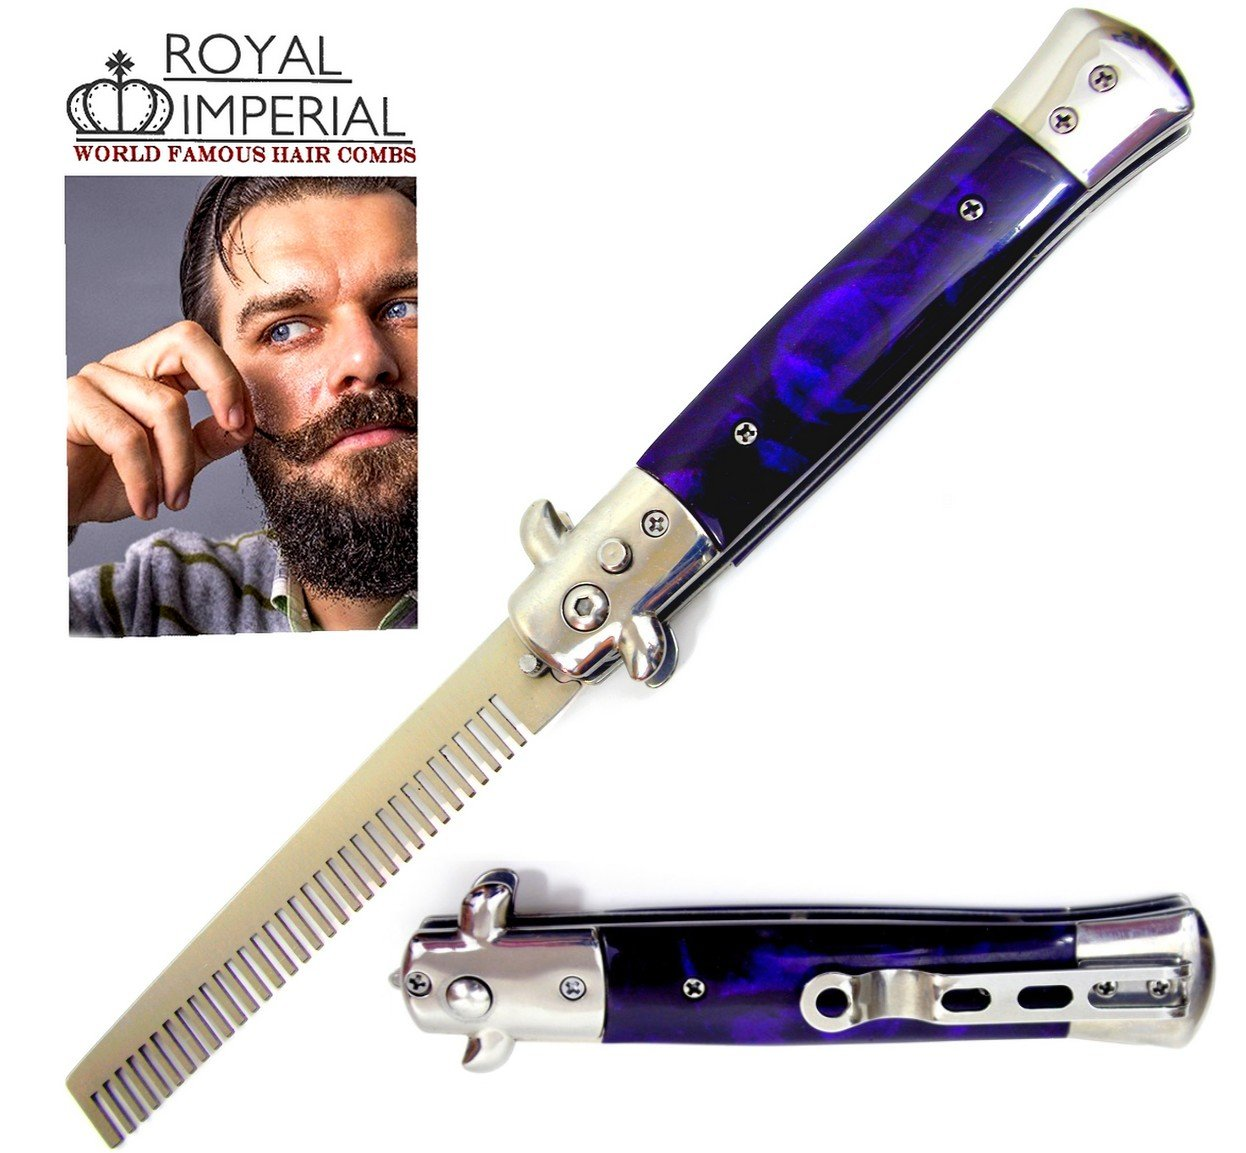 Royal Imperial Metal Switchblade Pocket Folding Flick Hair Comb For Beard, Mustache, Head PURPLE THUNDER Handle ~ INCLUDES Beard Fact Wallet Book ~ Nicer Than Butterfly Knife Trainer